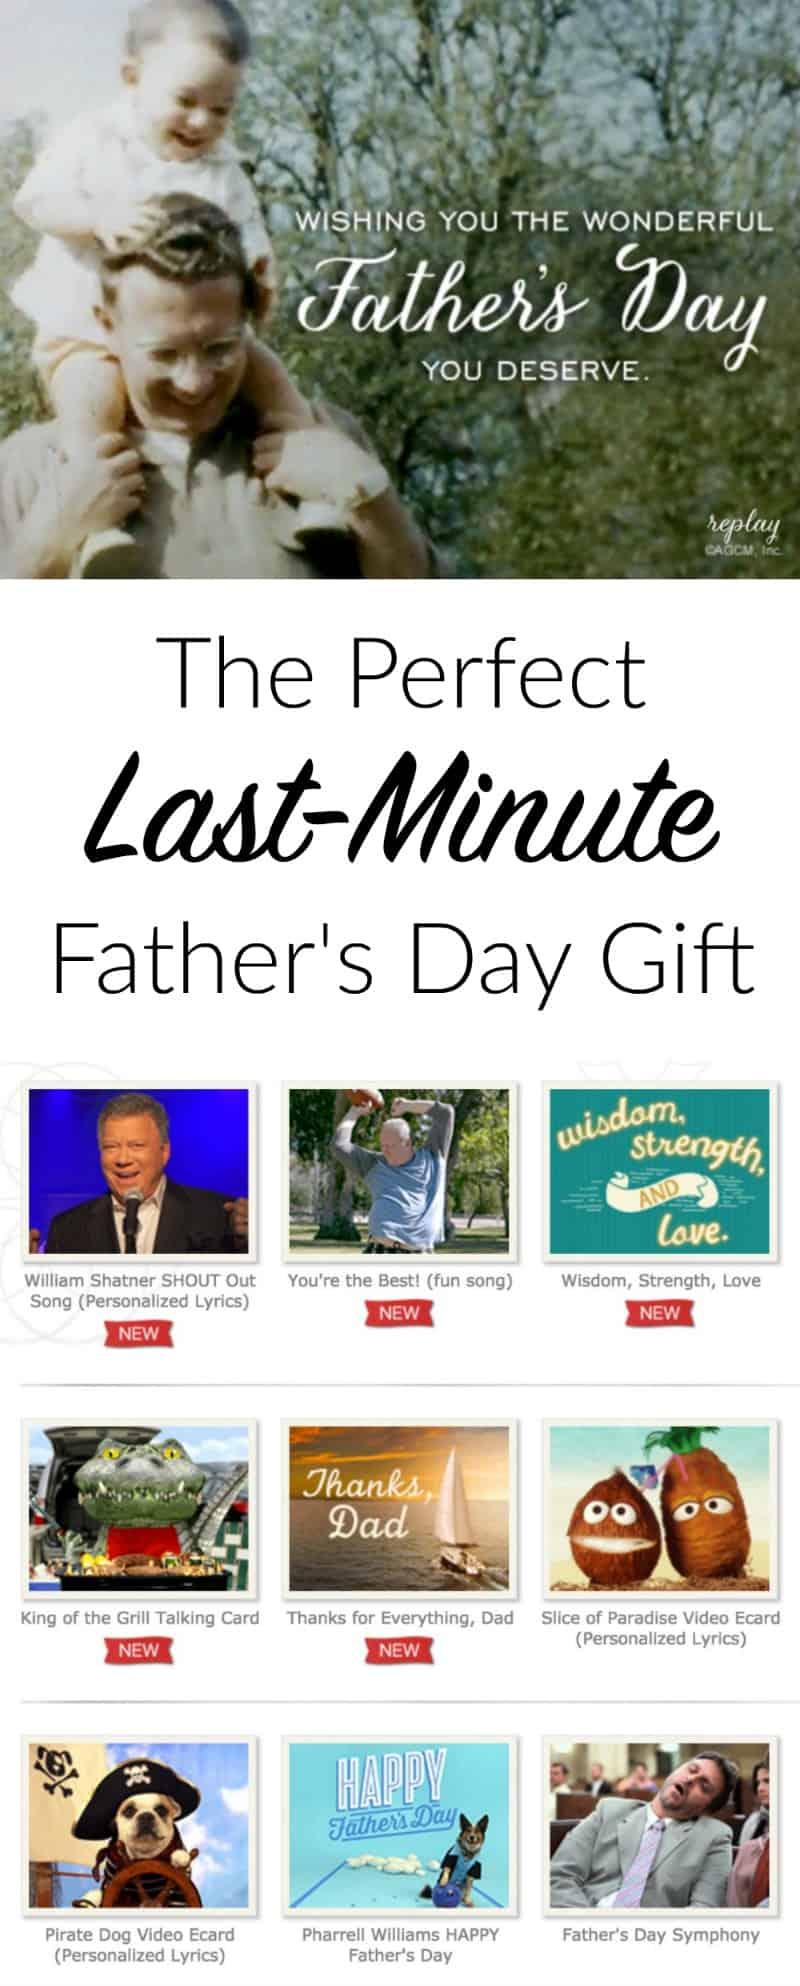 The Perfect Last-Minute Fathers Day Gift